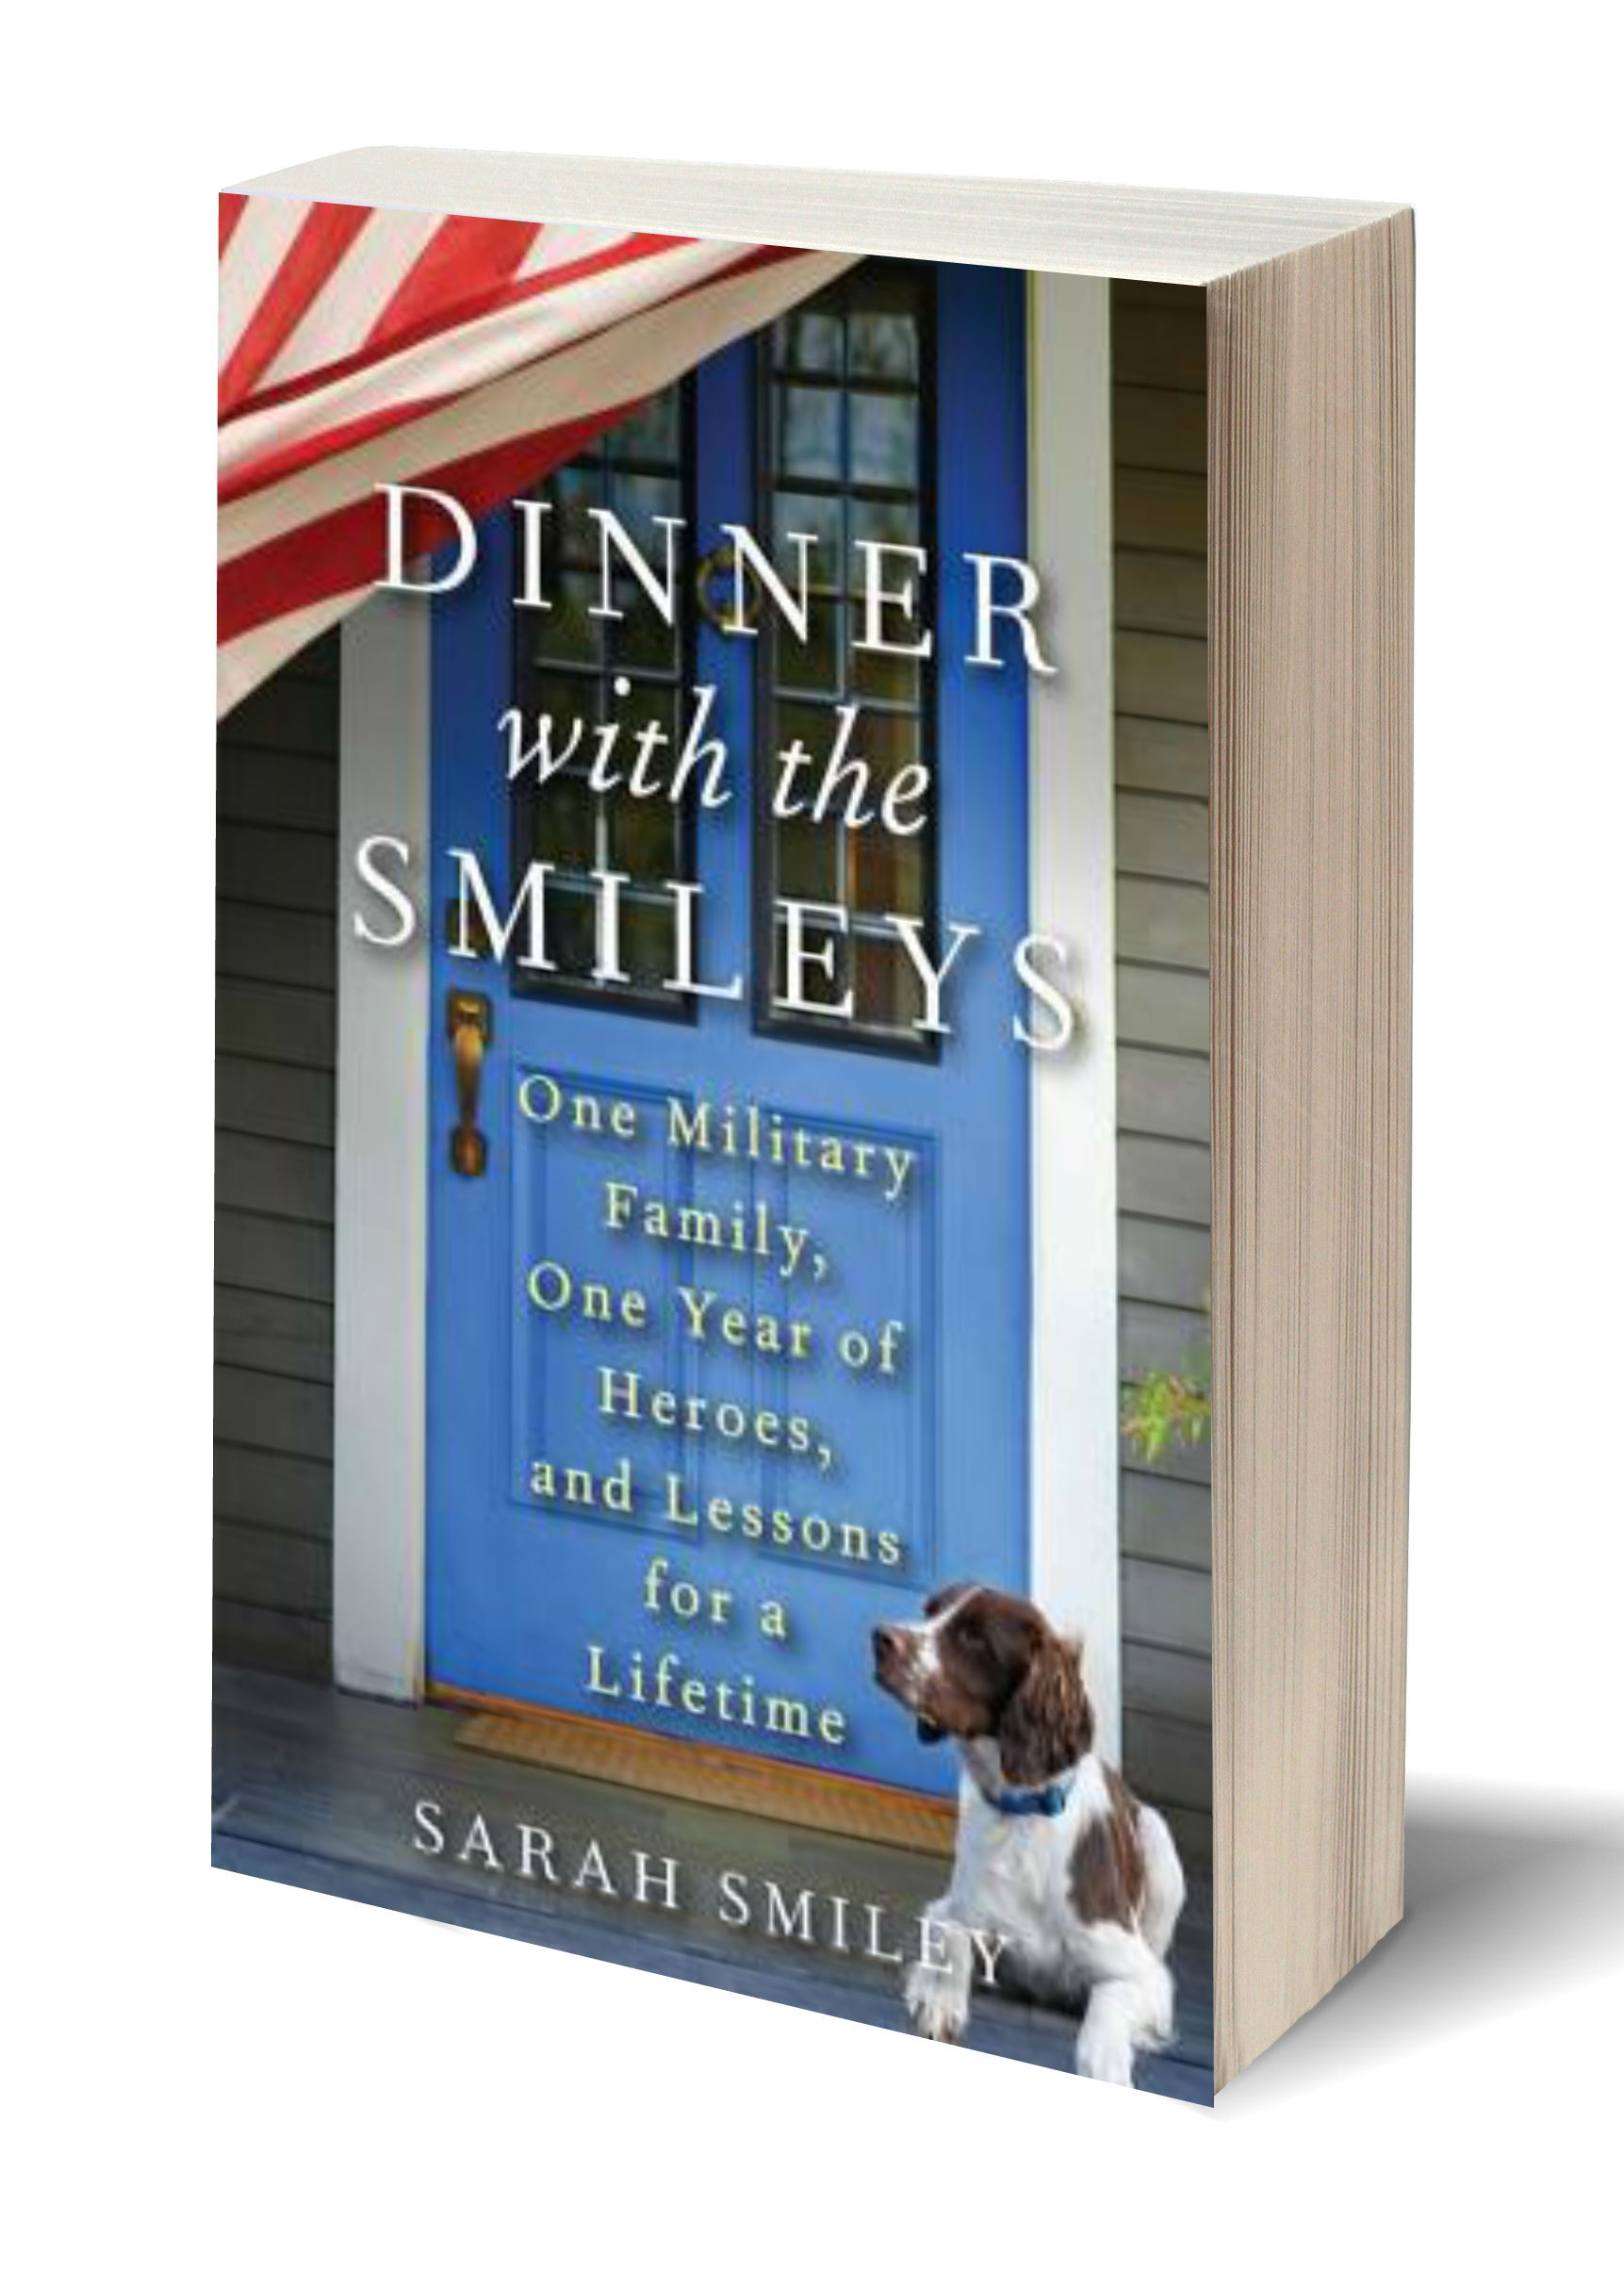 Dinner with the Smileys (Hardcover Edition)